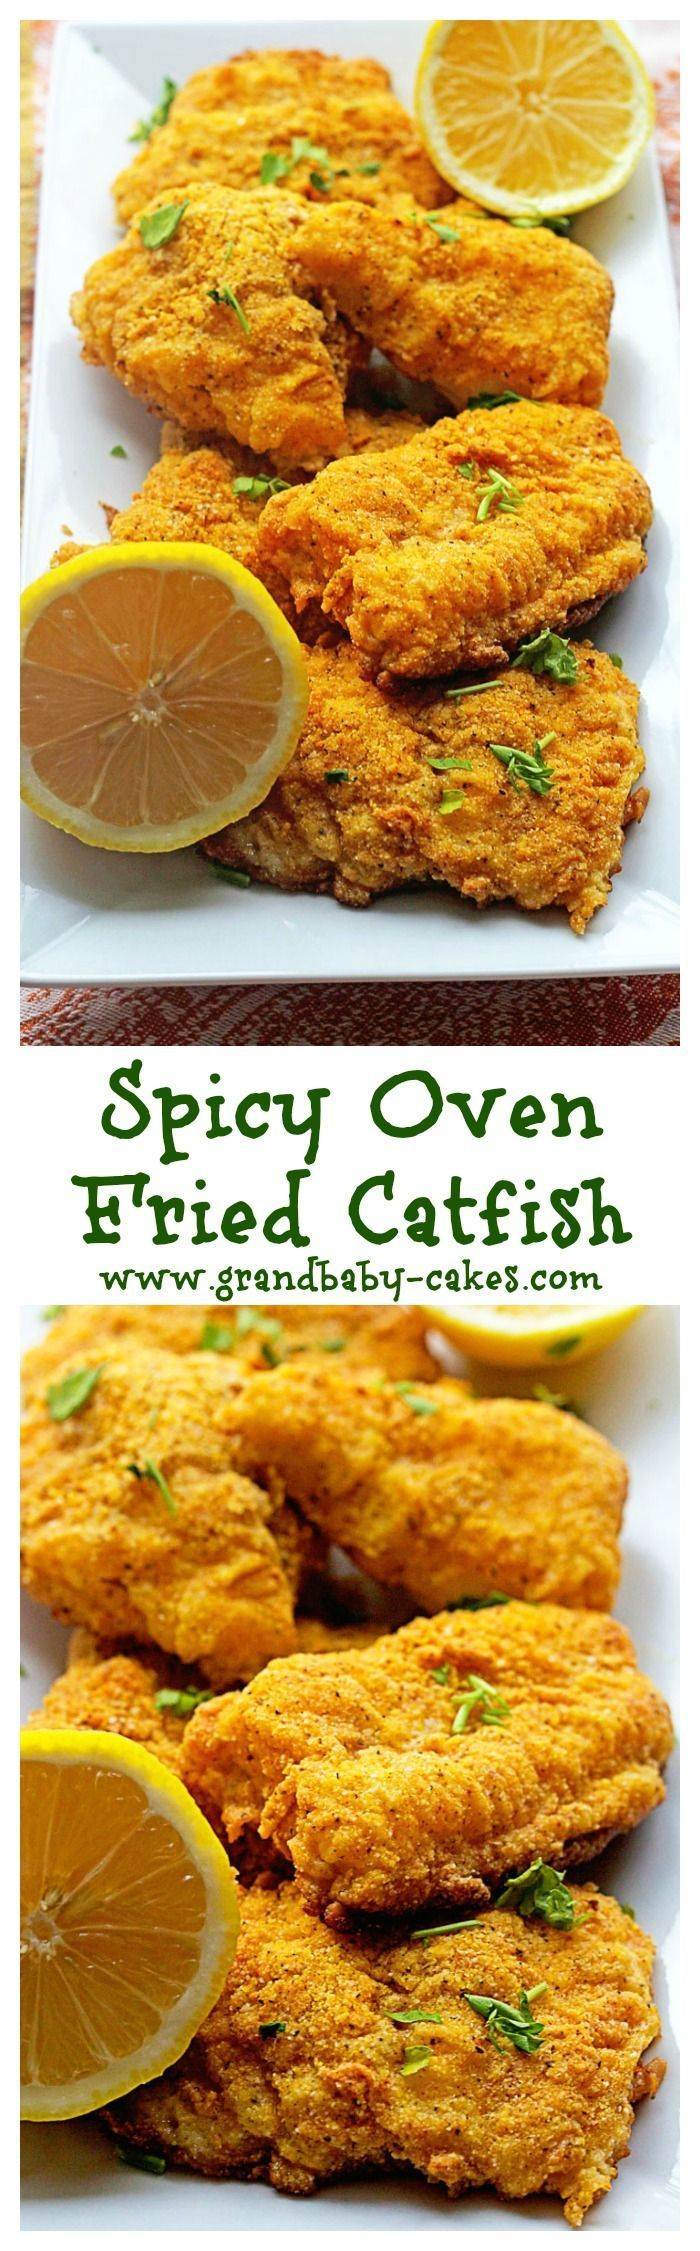 Spicy Oven Fried Catfish